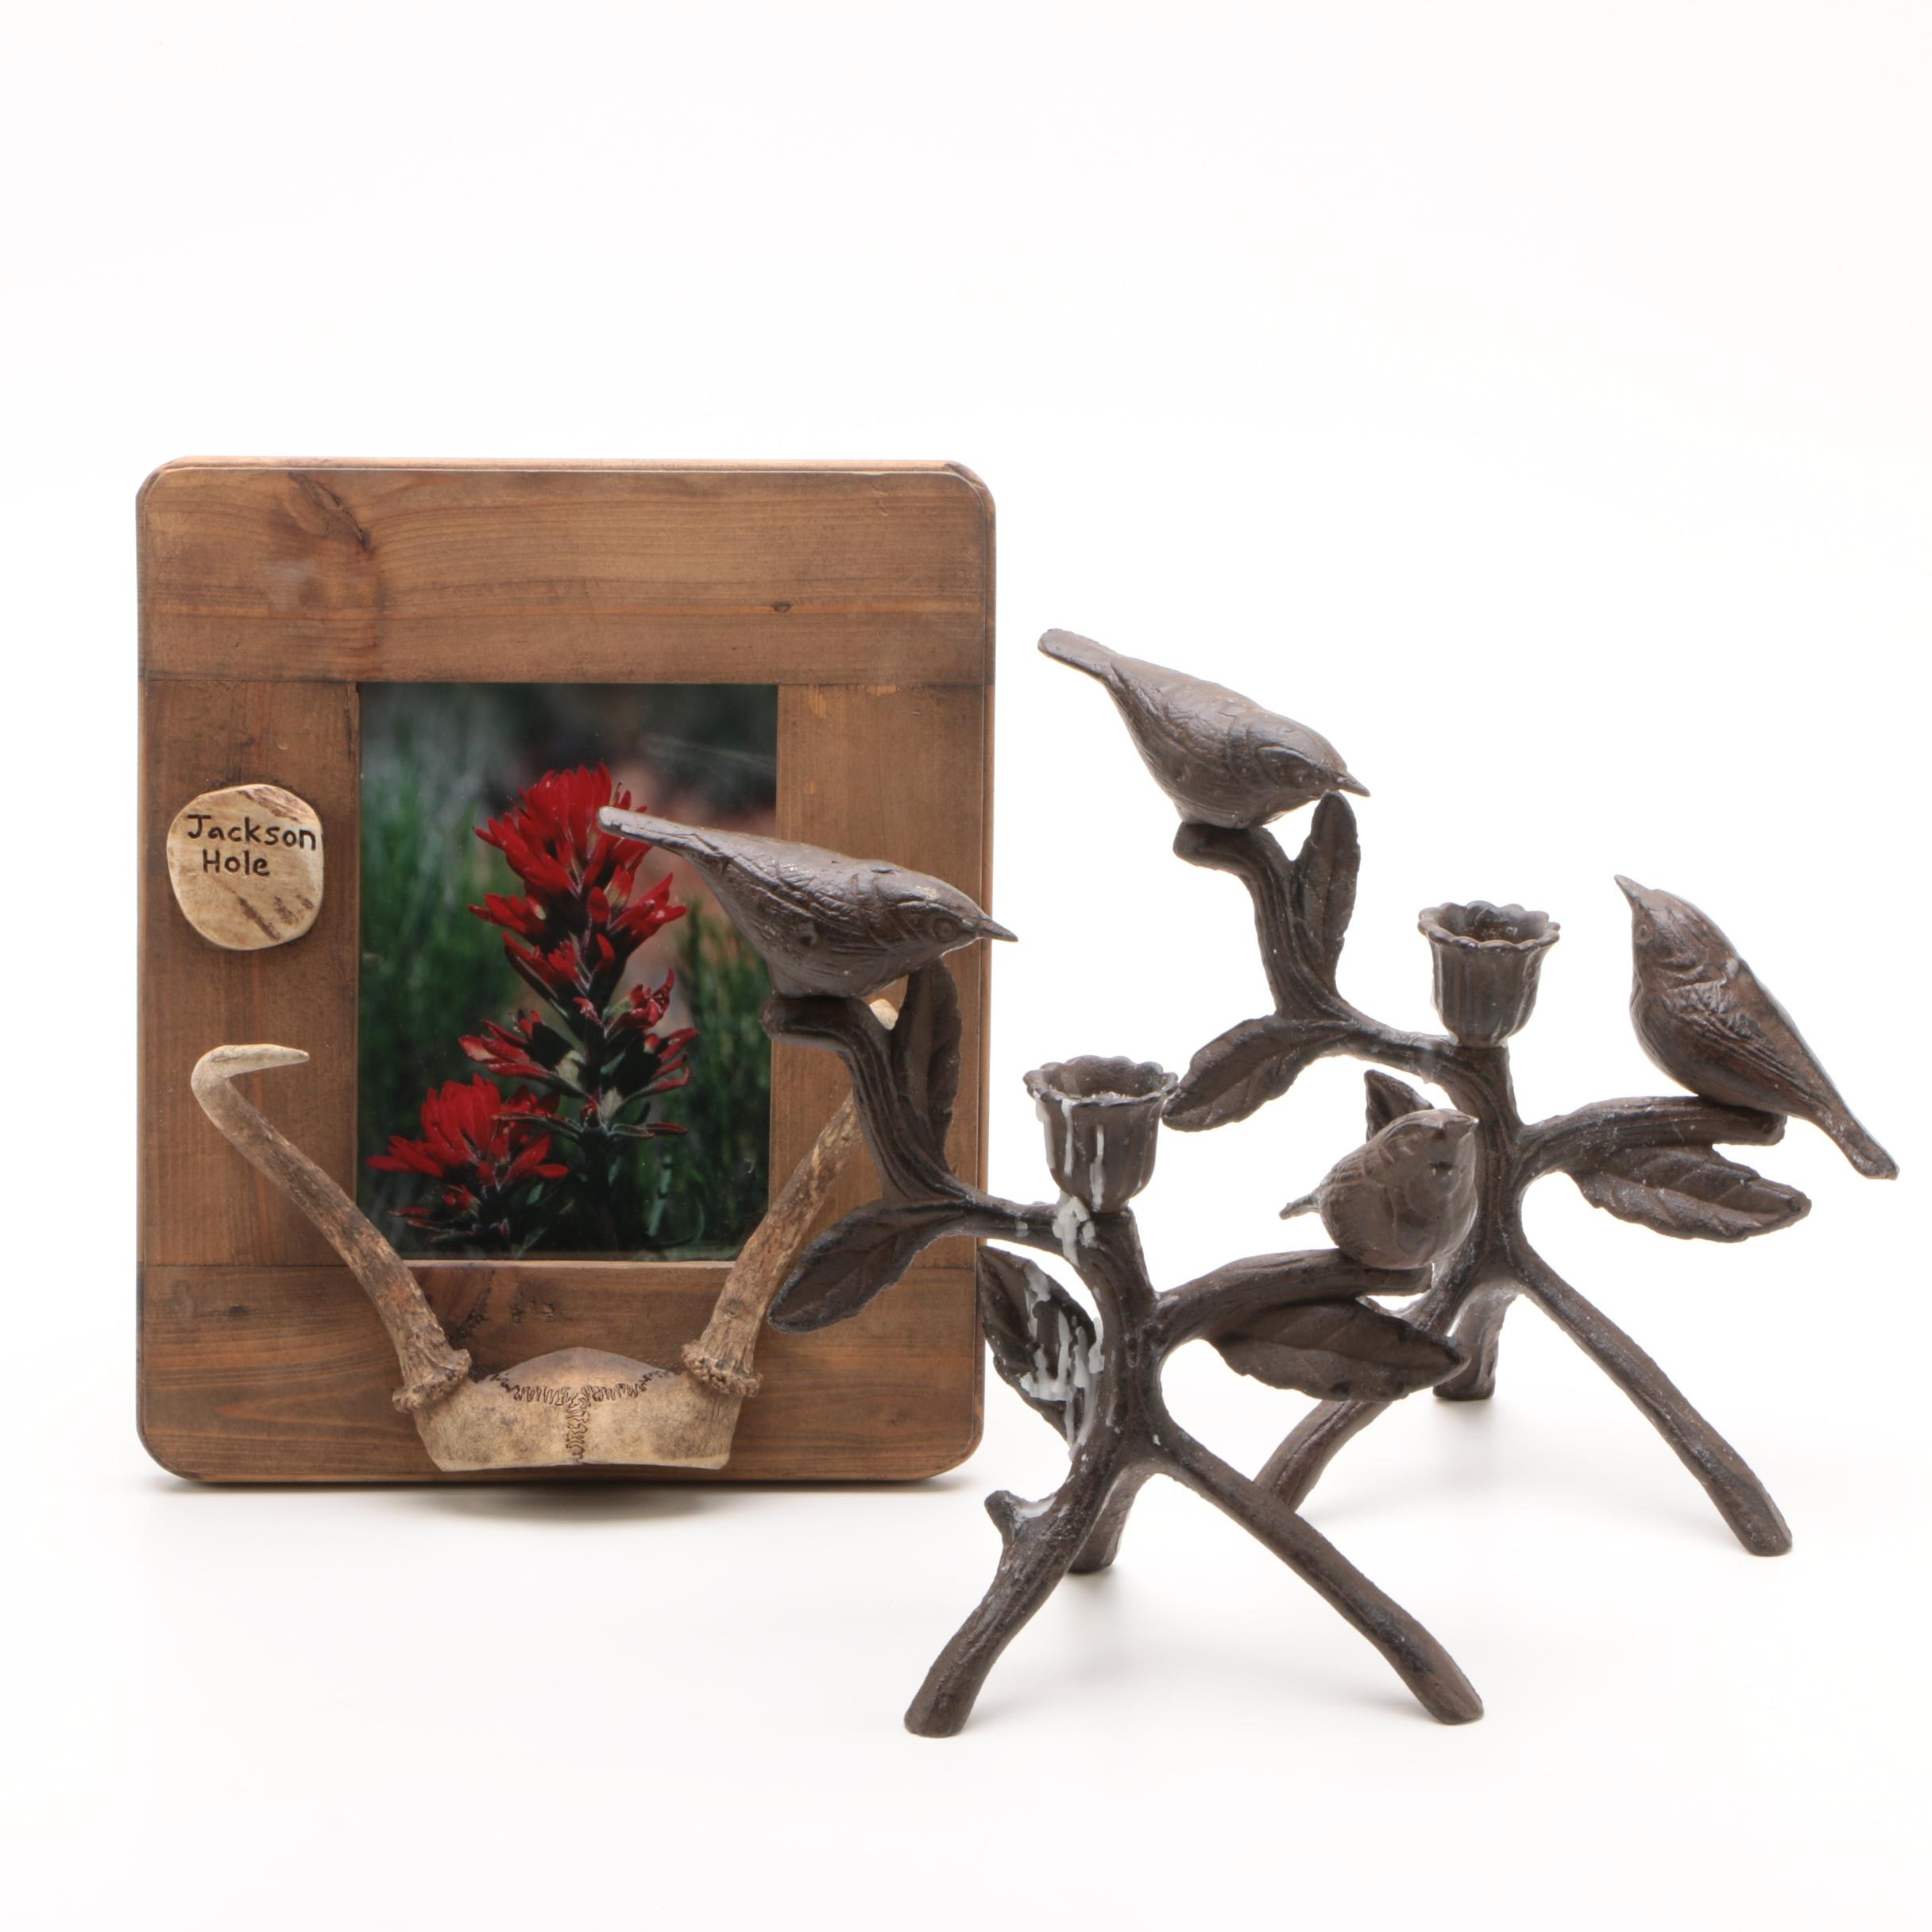 Cast Iron Bird Candlesticks and Jackson Hole Wooden Picture Frame